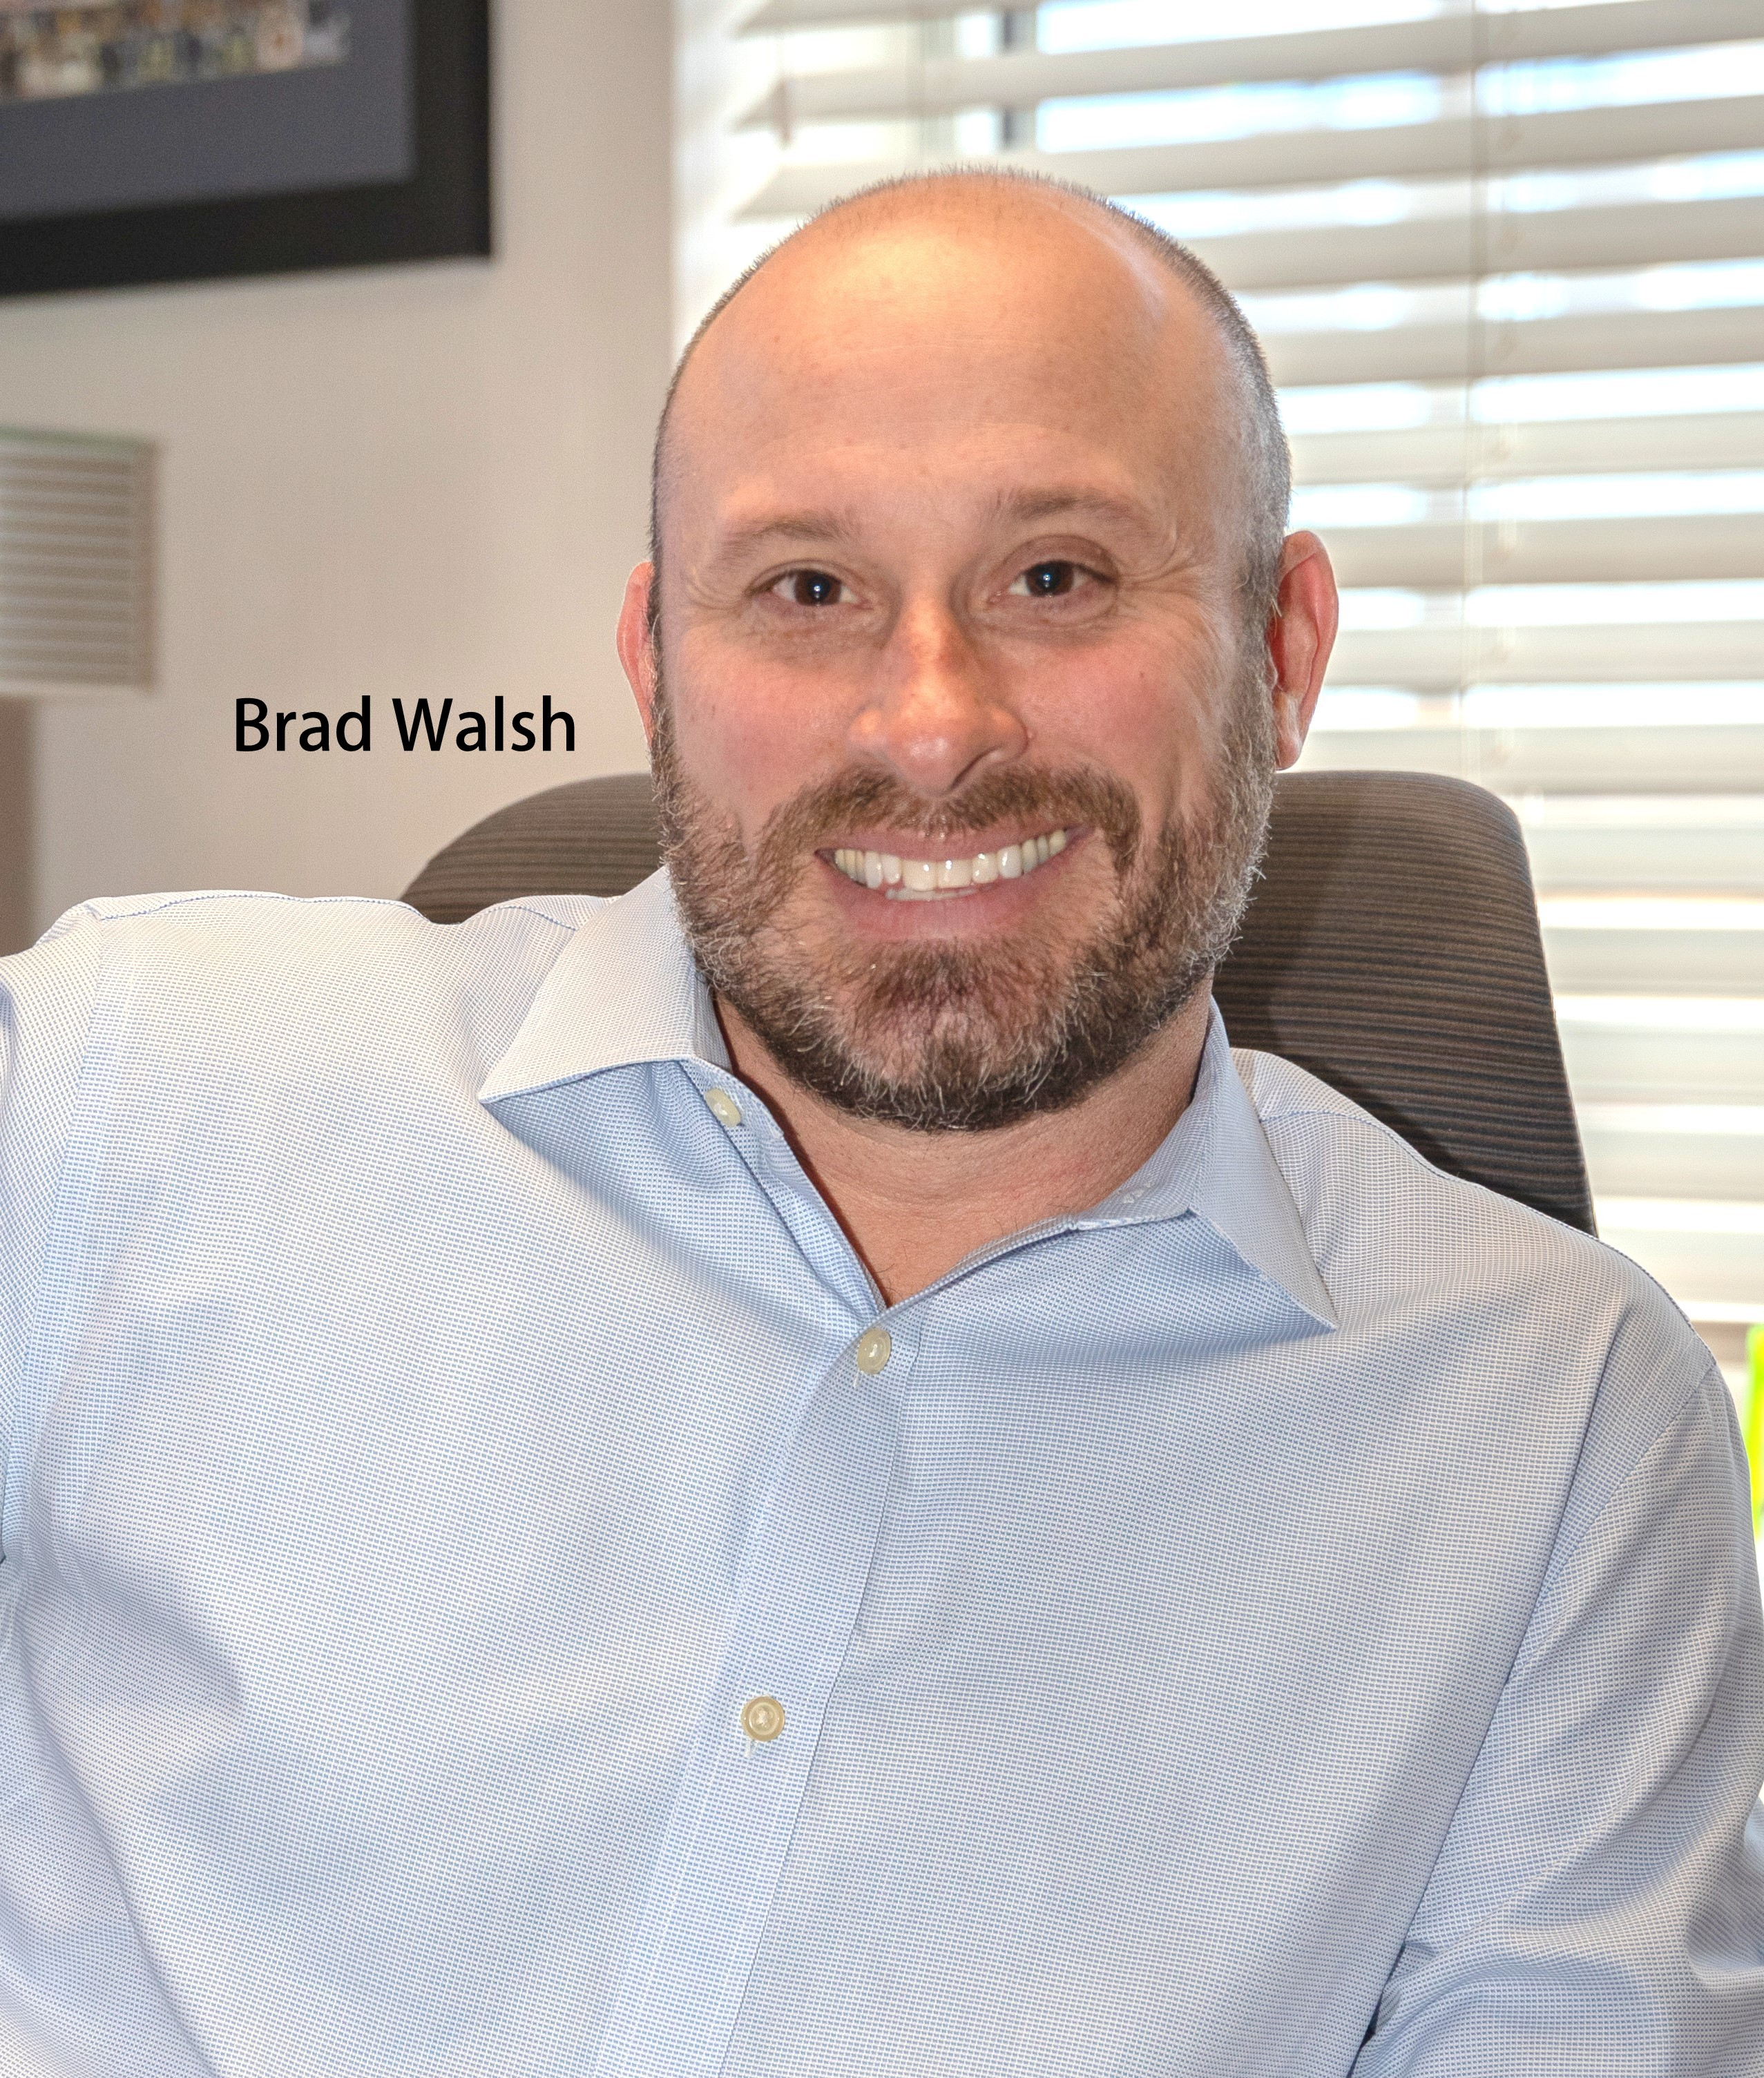 Brad Walsh, President and CEO